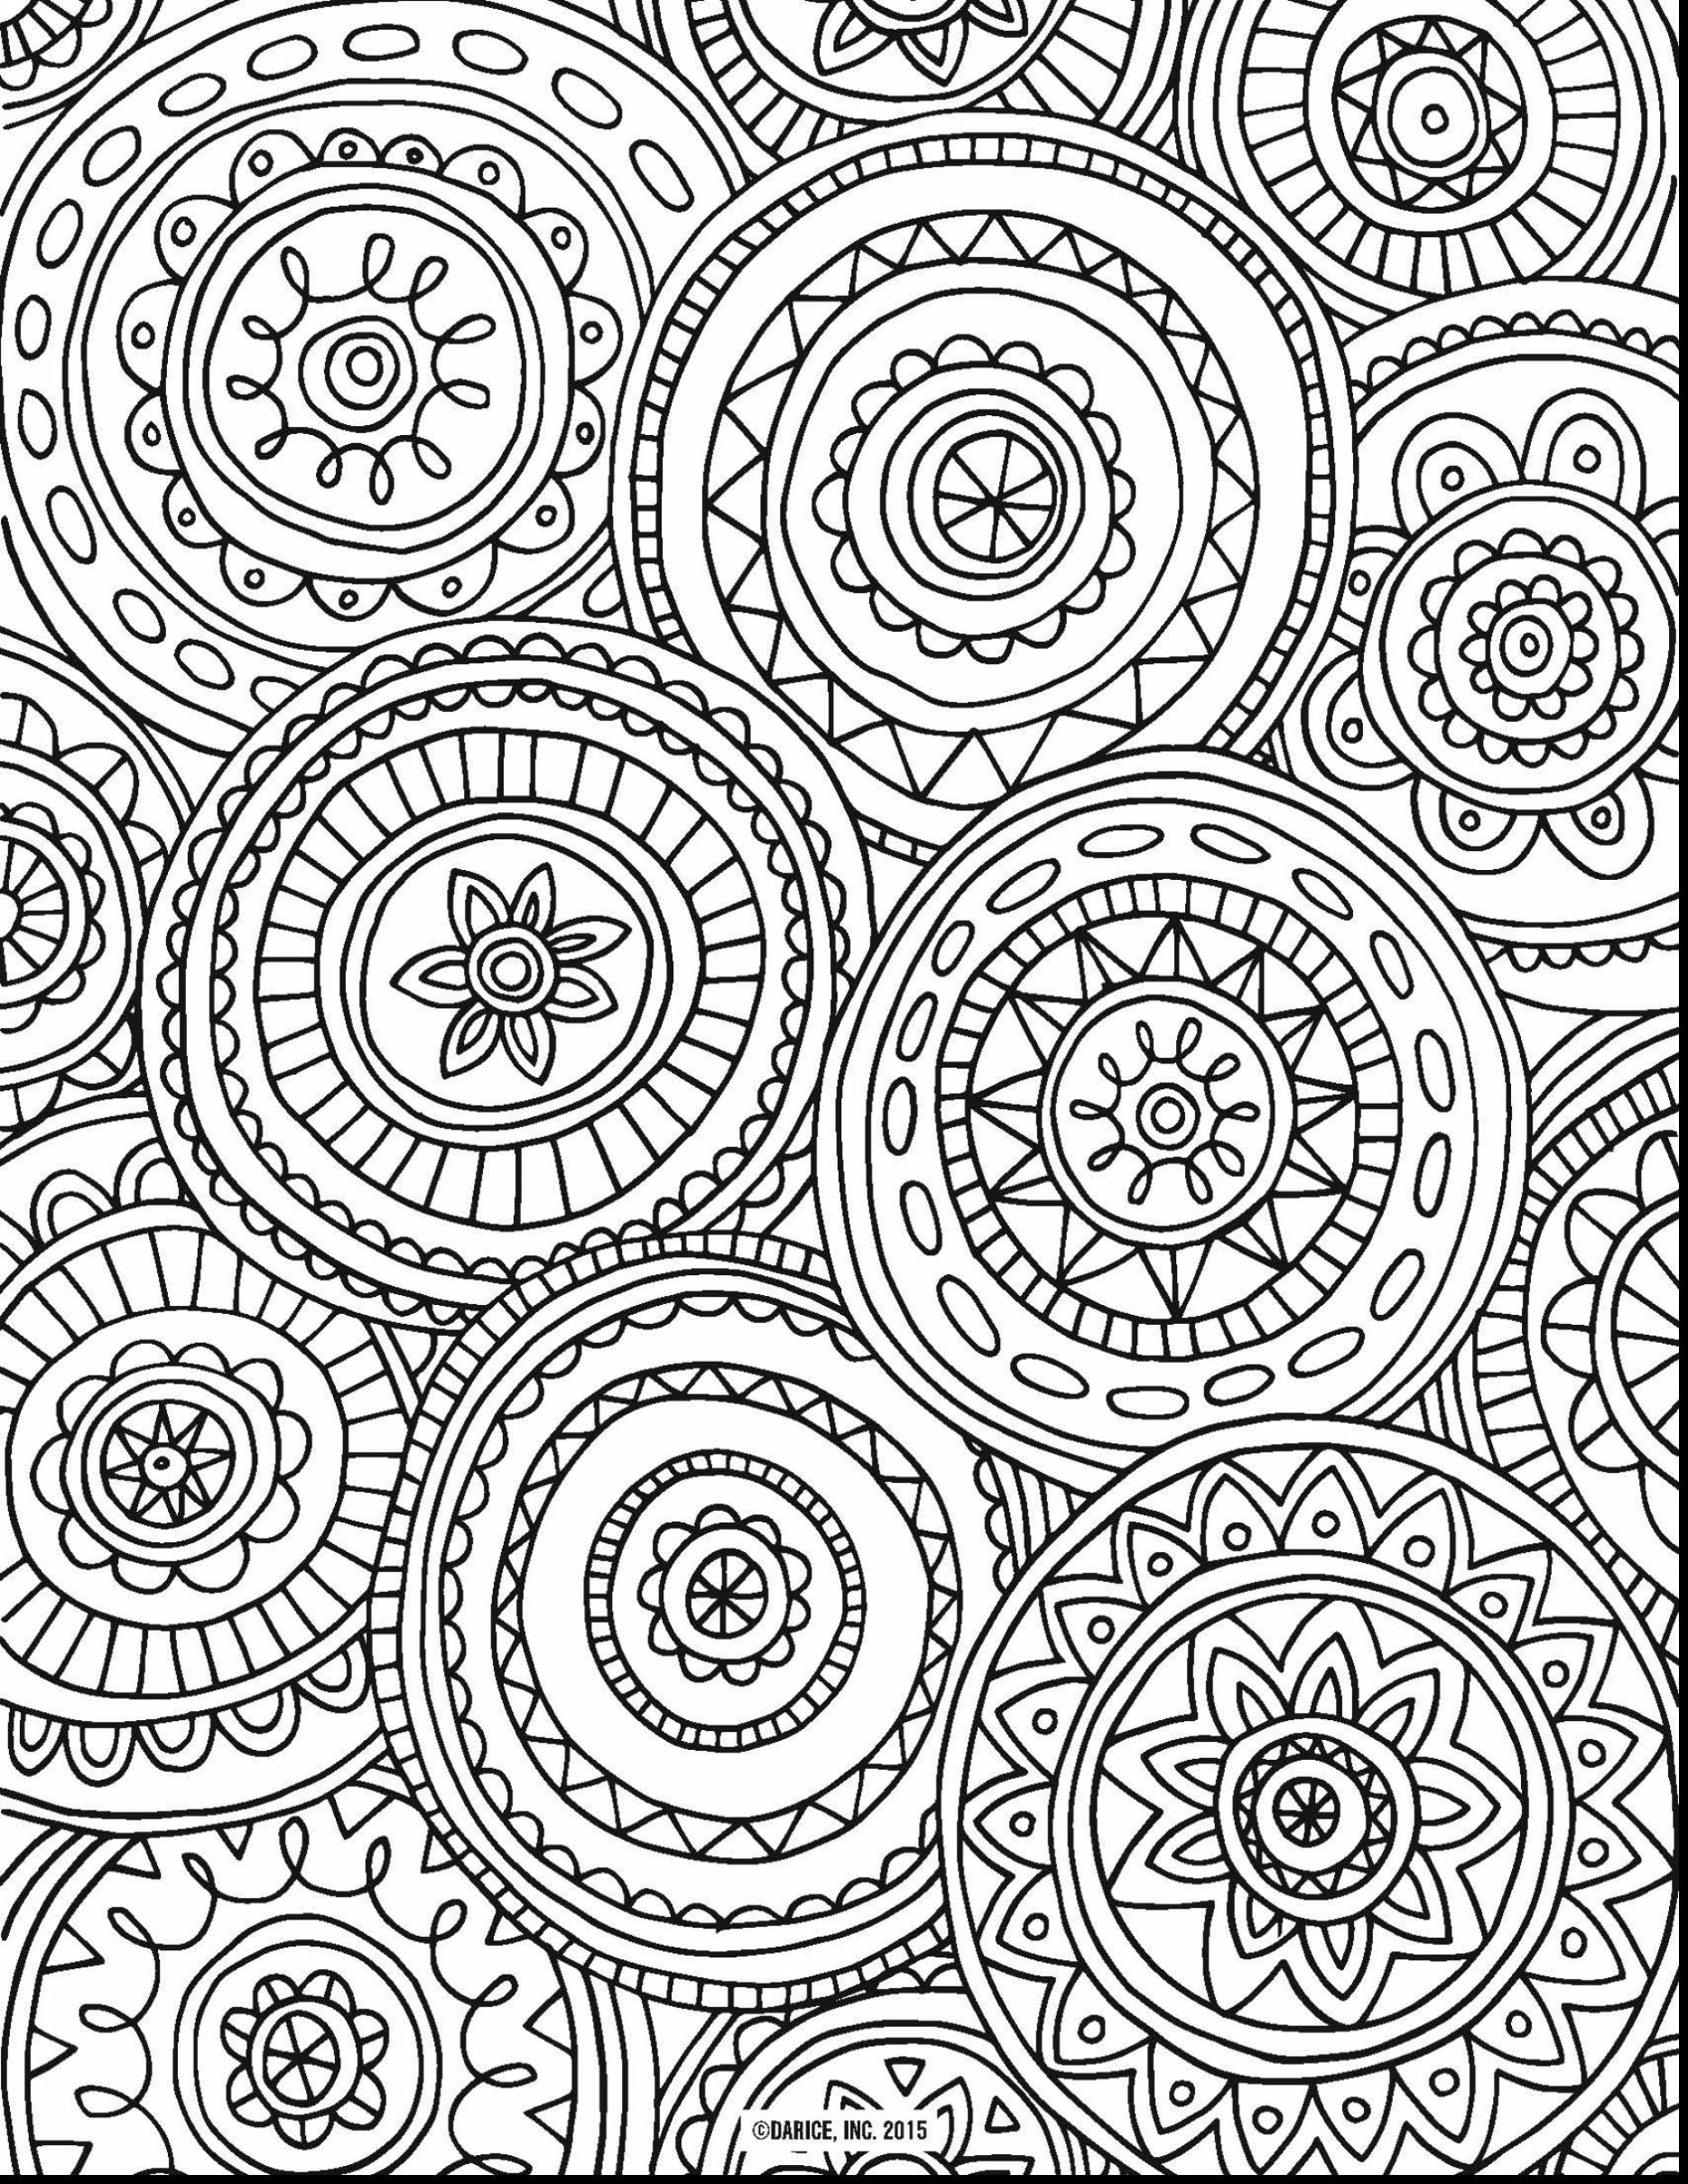 Best Christmas Mandala Coloring Pages Printable